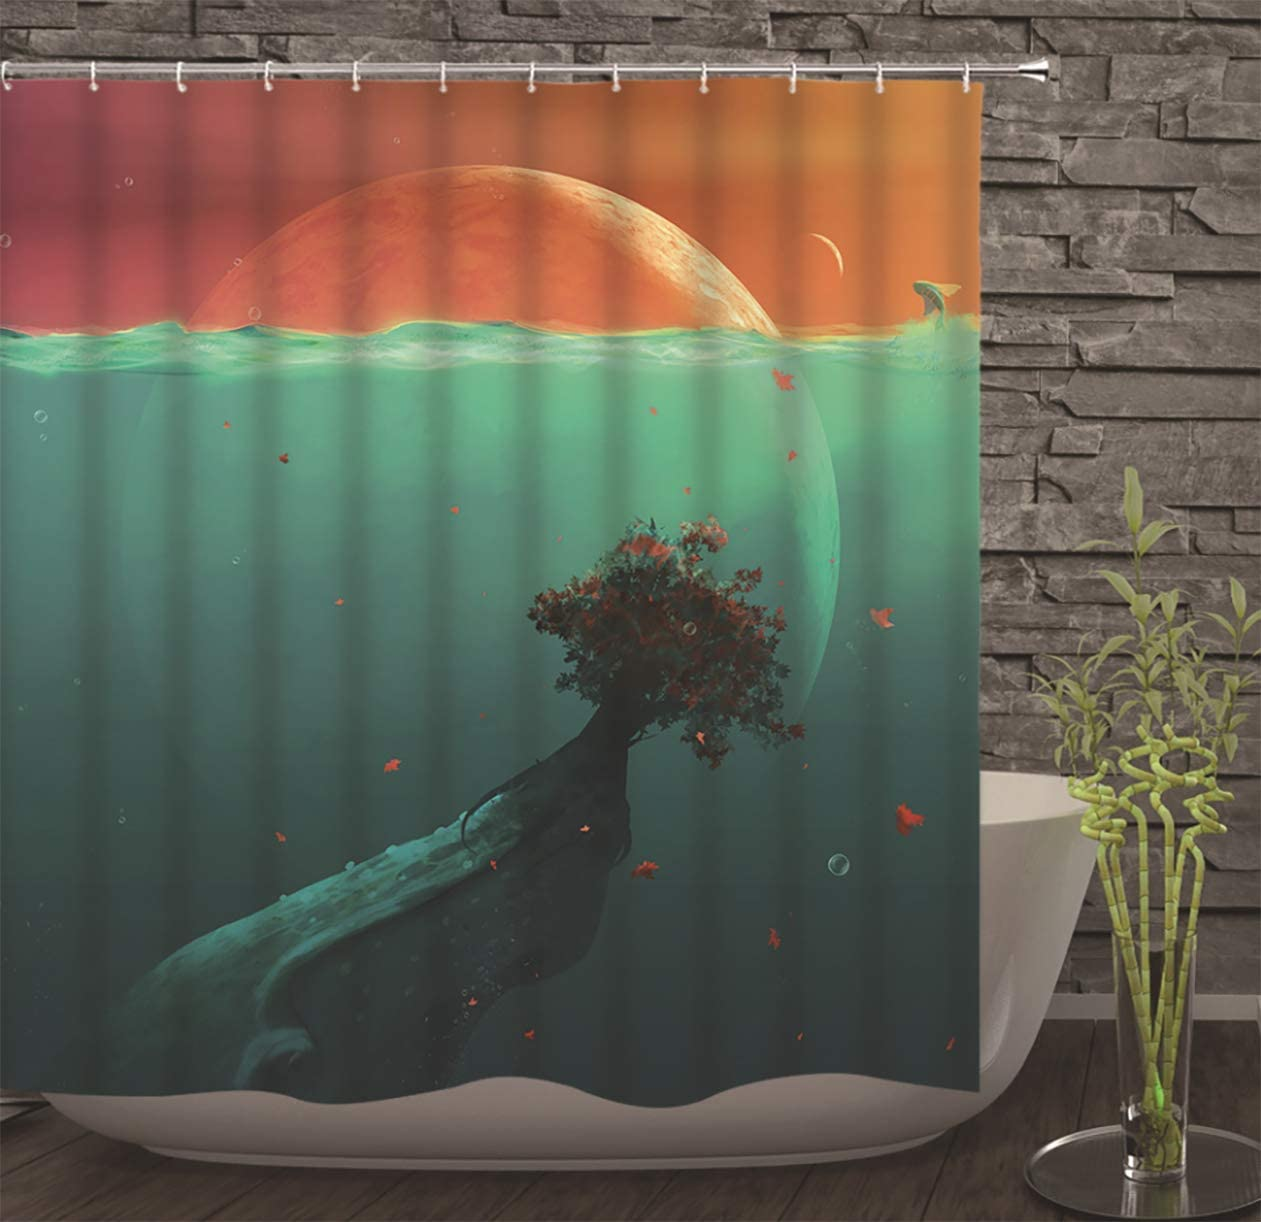 "Ruinuo Flowers in Water Shower Curtain with Hooks Star Fish Waterproof Fabric Bathroom Decor Green 71""x71"""